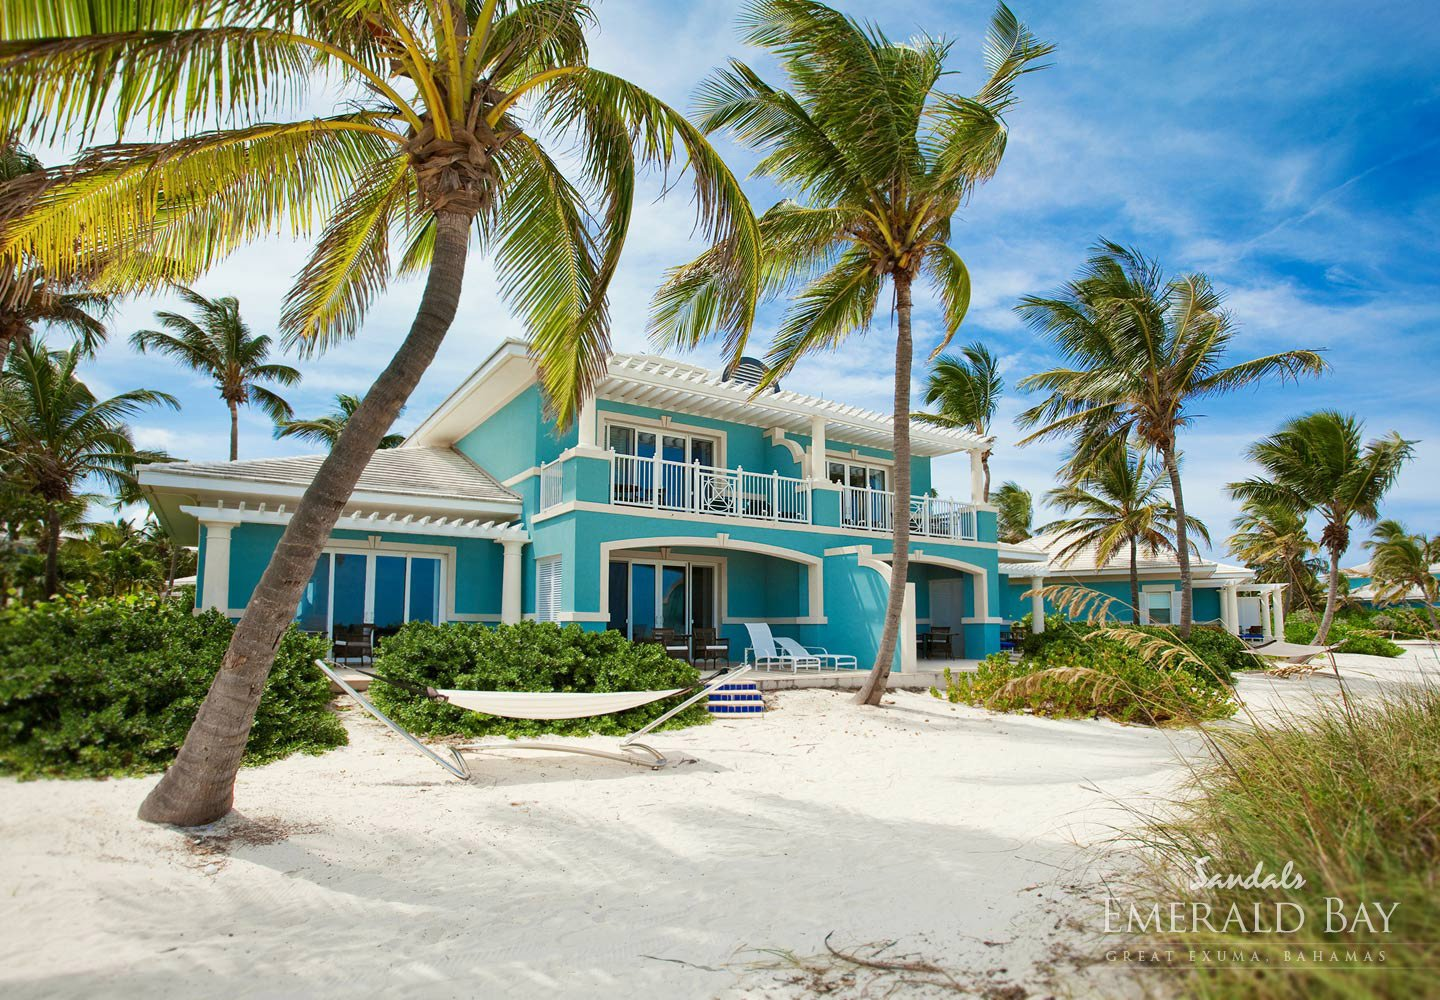 Sandals emerald bay travel agent destination weddings for Top caribbean honeymoon resorts